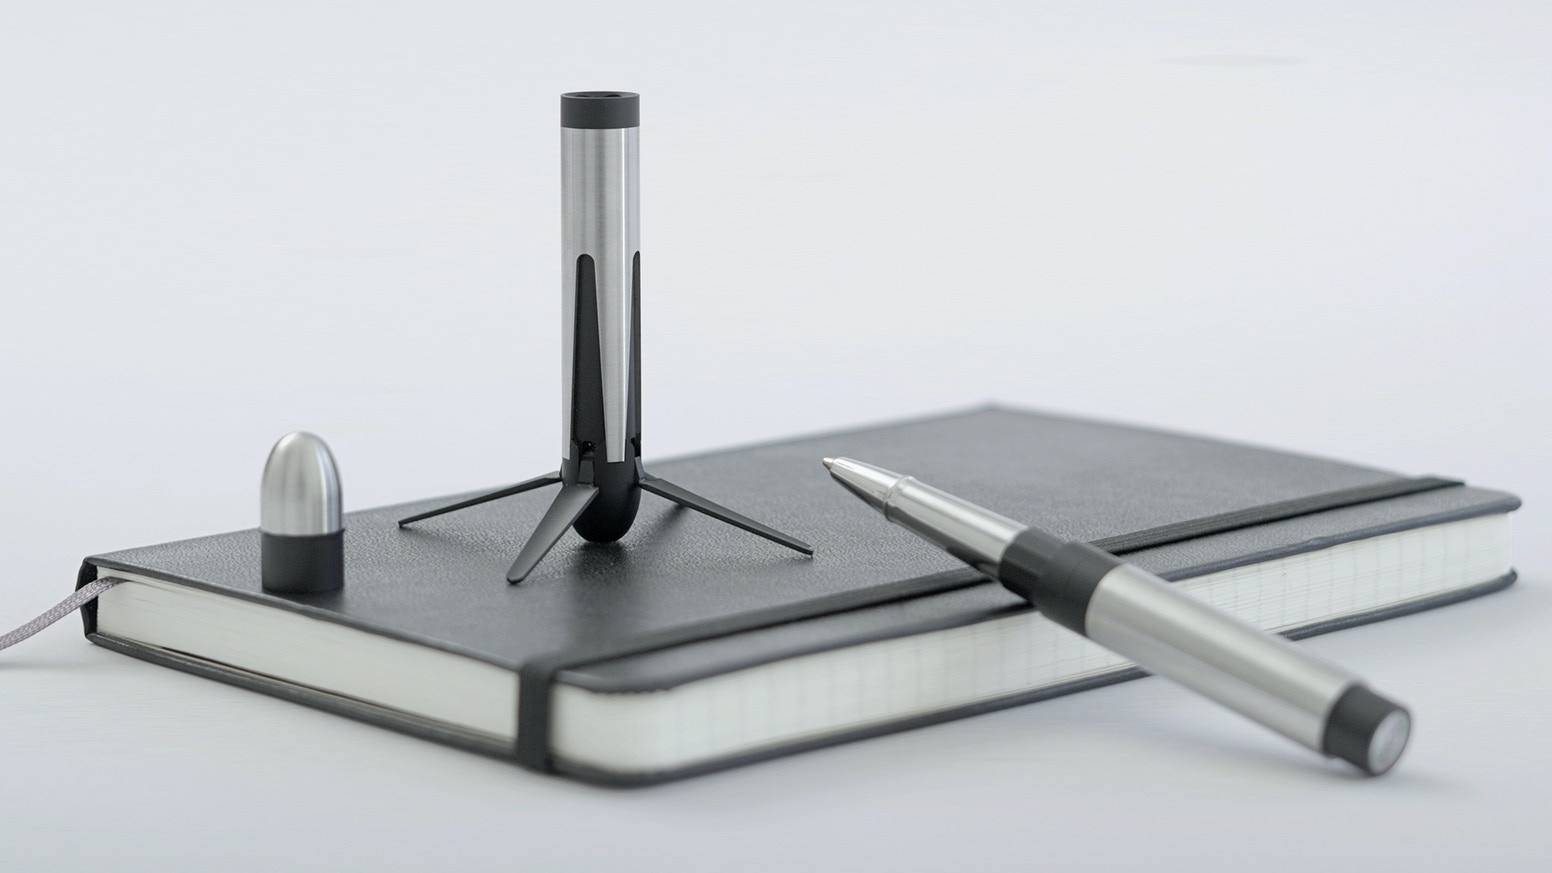 Pen inspired by SpaceX rocket with retracting mechanical legs and magnetic capsule, in aluminium or steel. For all space enthusiasts.